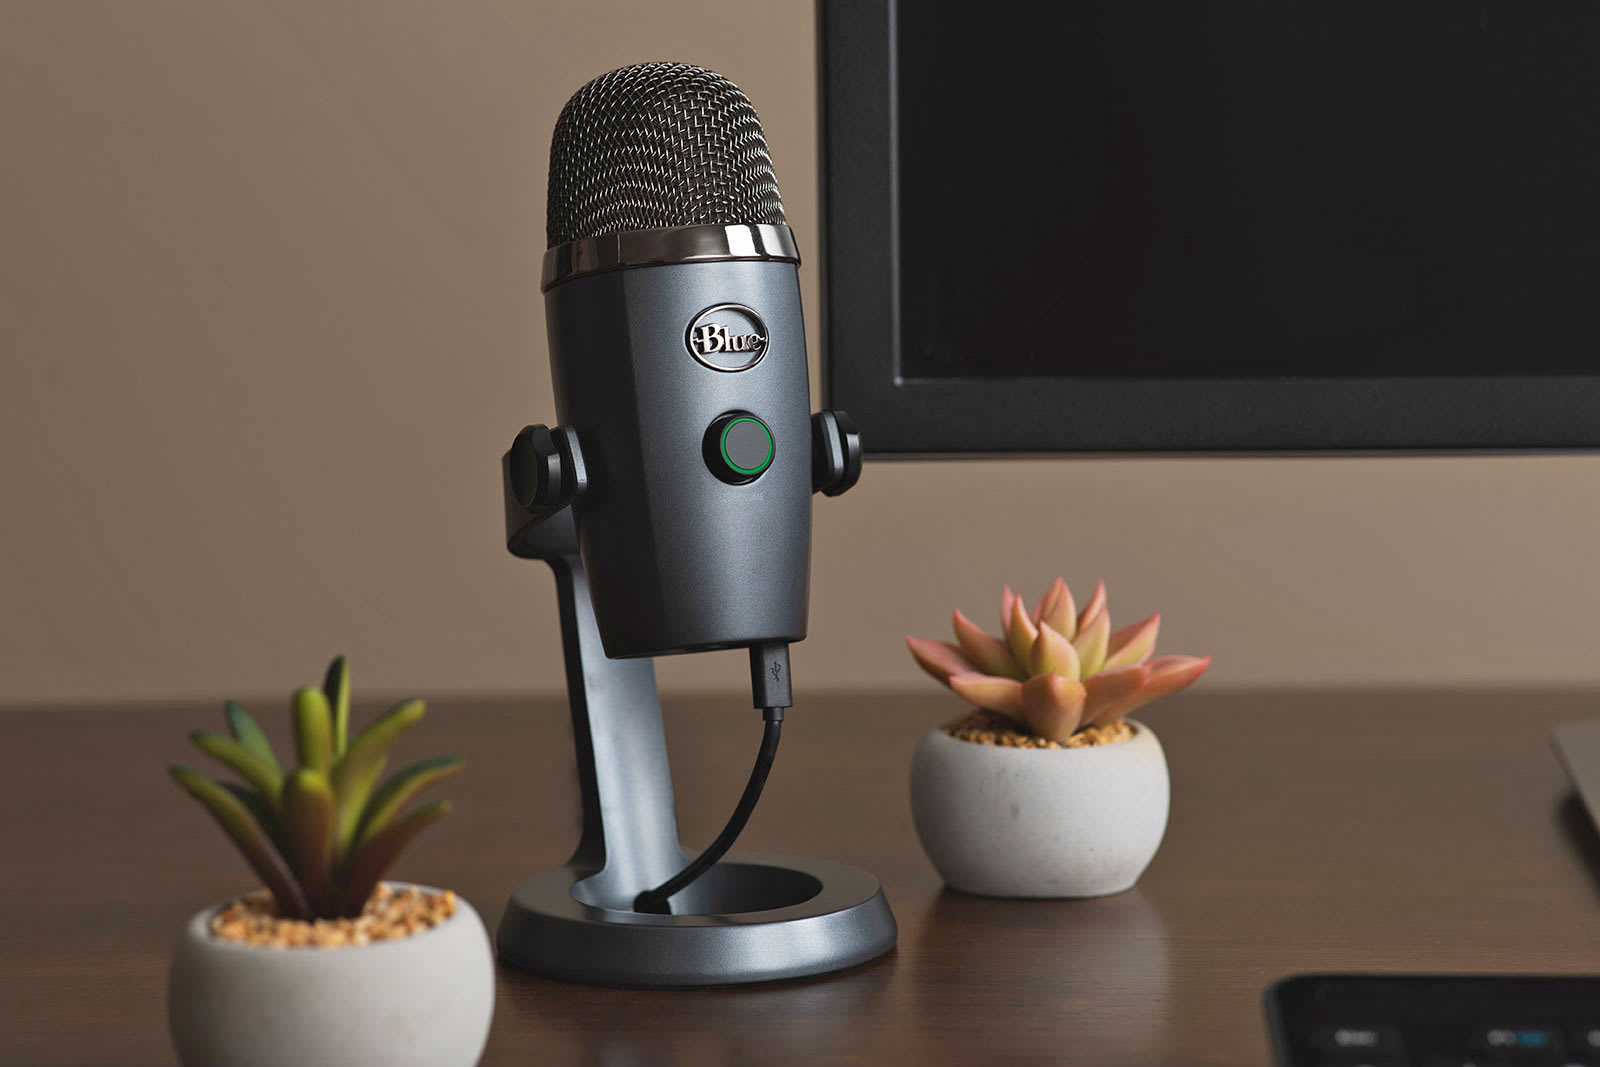 Blue's Yeti Nano is built for simple, high-quality desktop